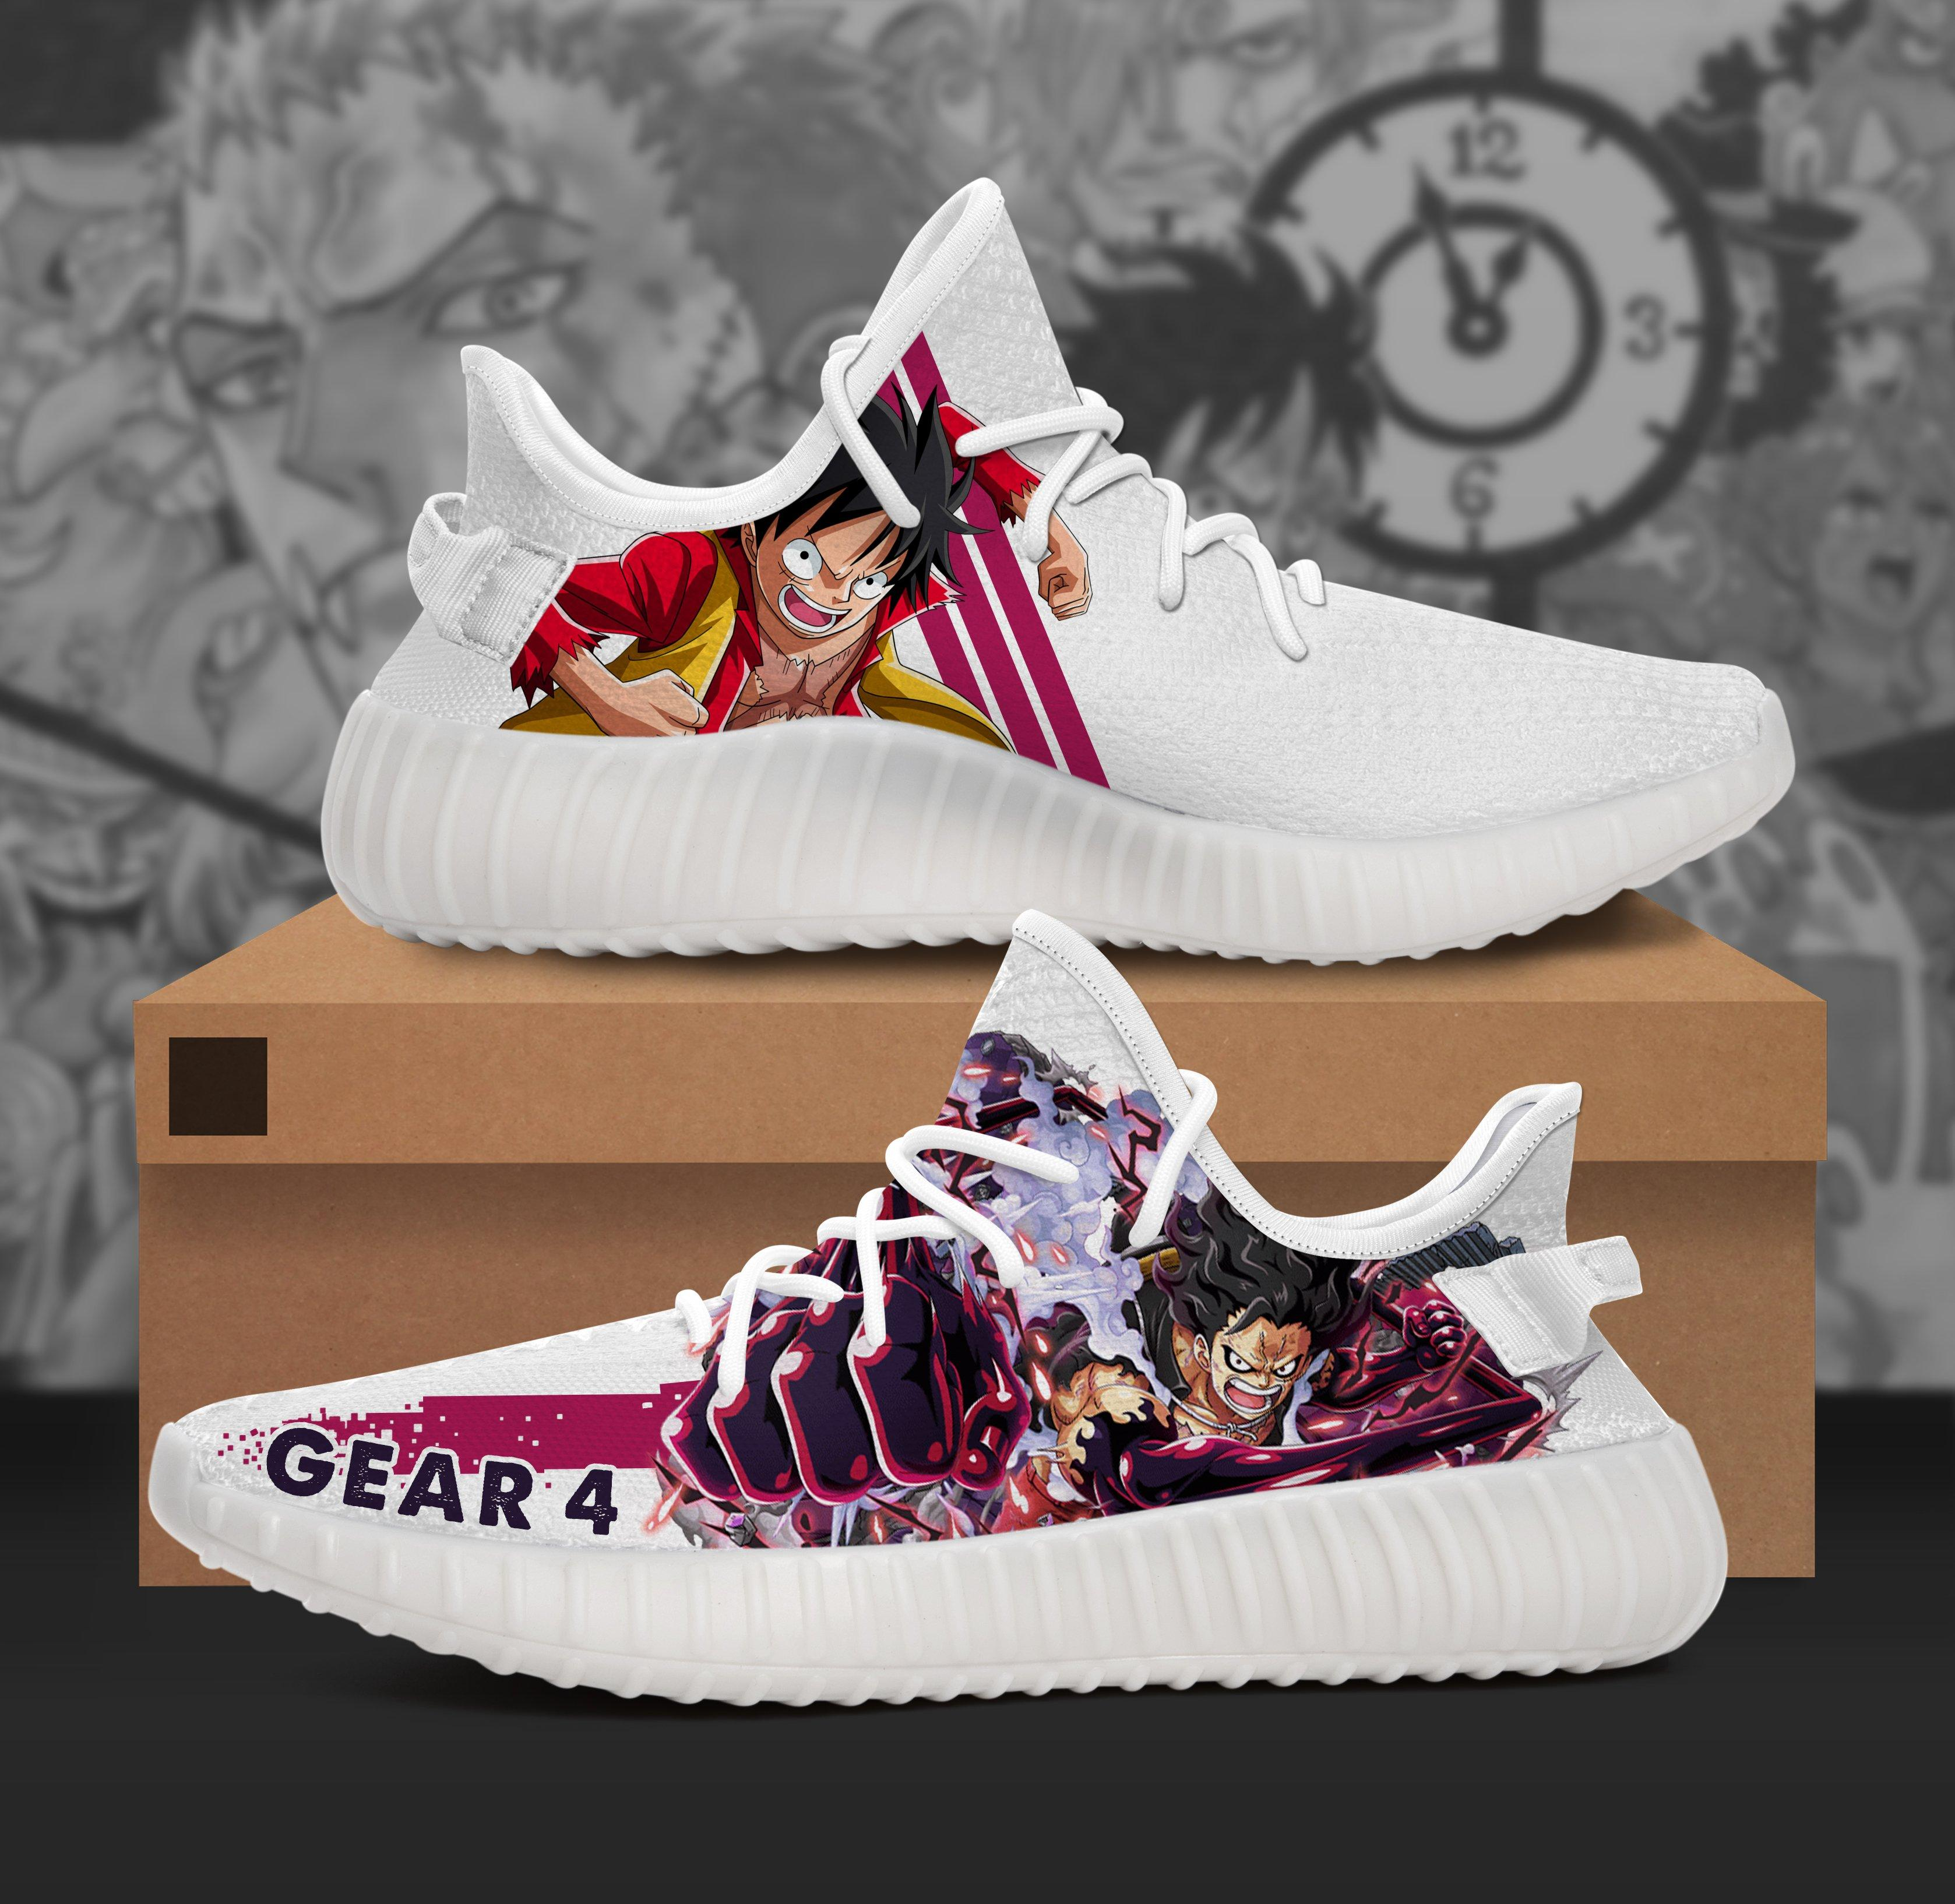 Monkey D. Luffy Character One Piece Anime Adidas Yeezy Boost